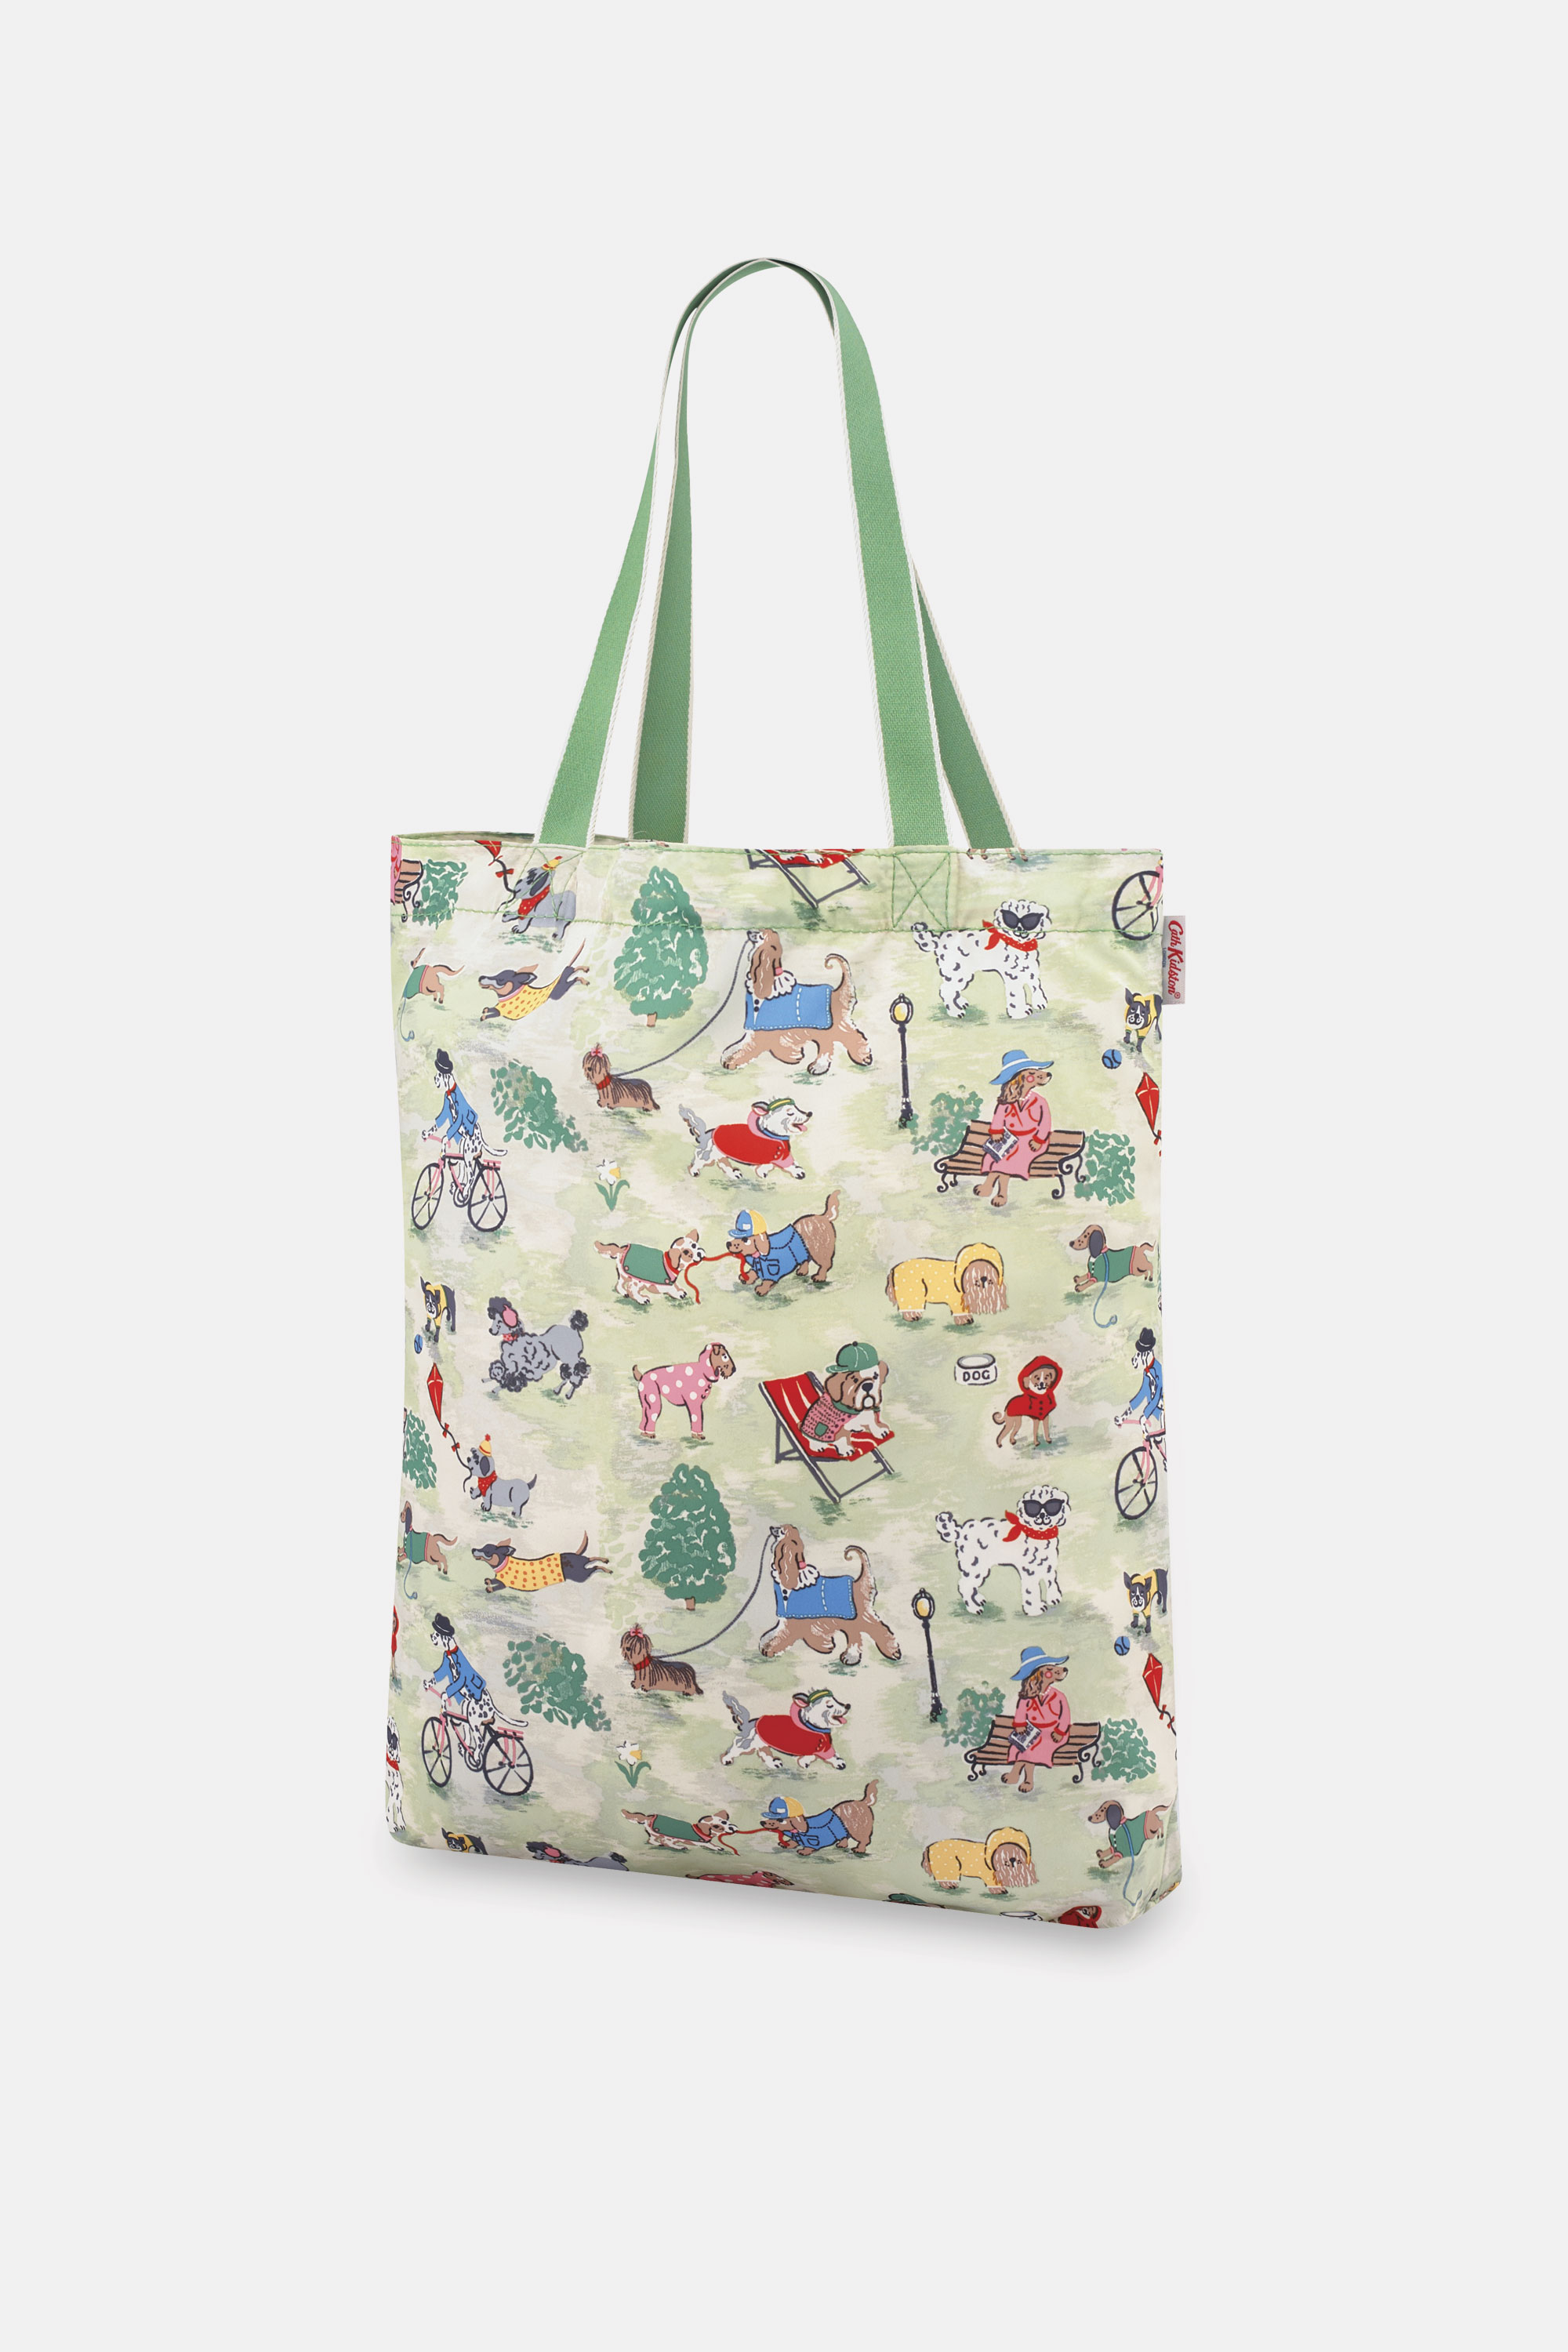 Cath Kidston Park Dogs Small Foldaway Tote in Green